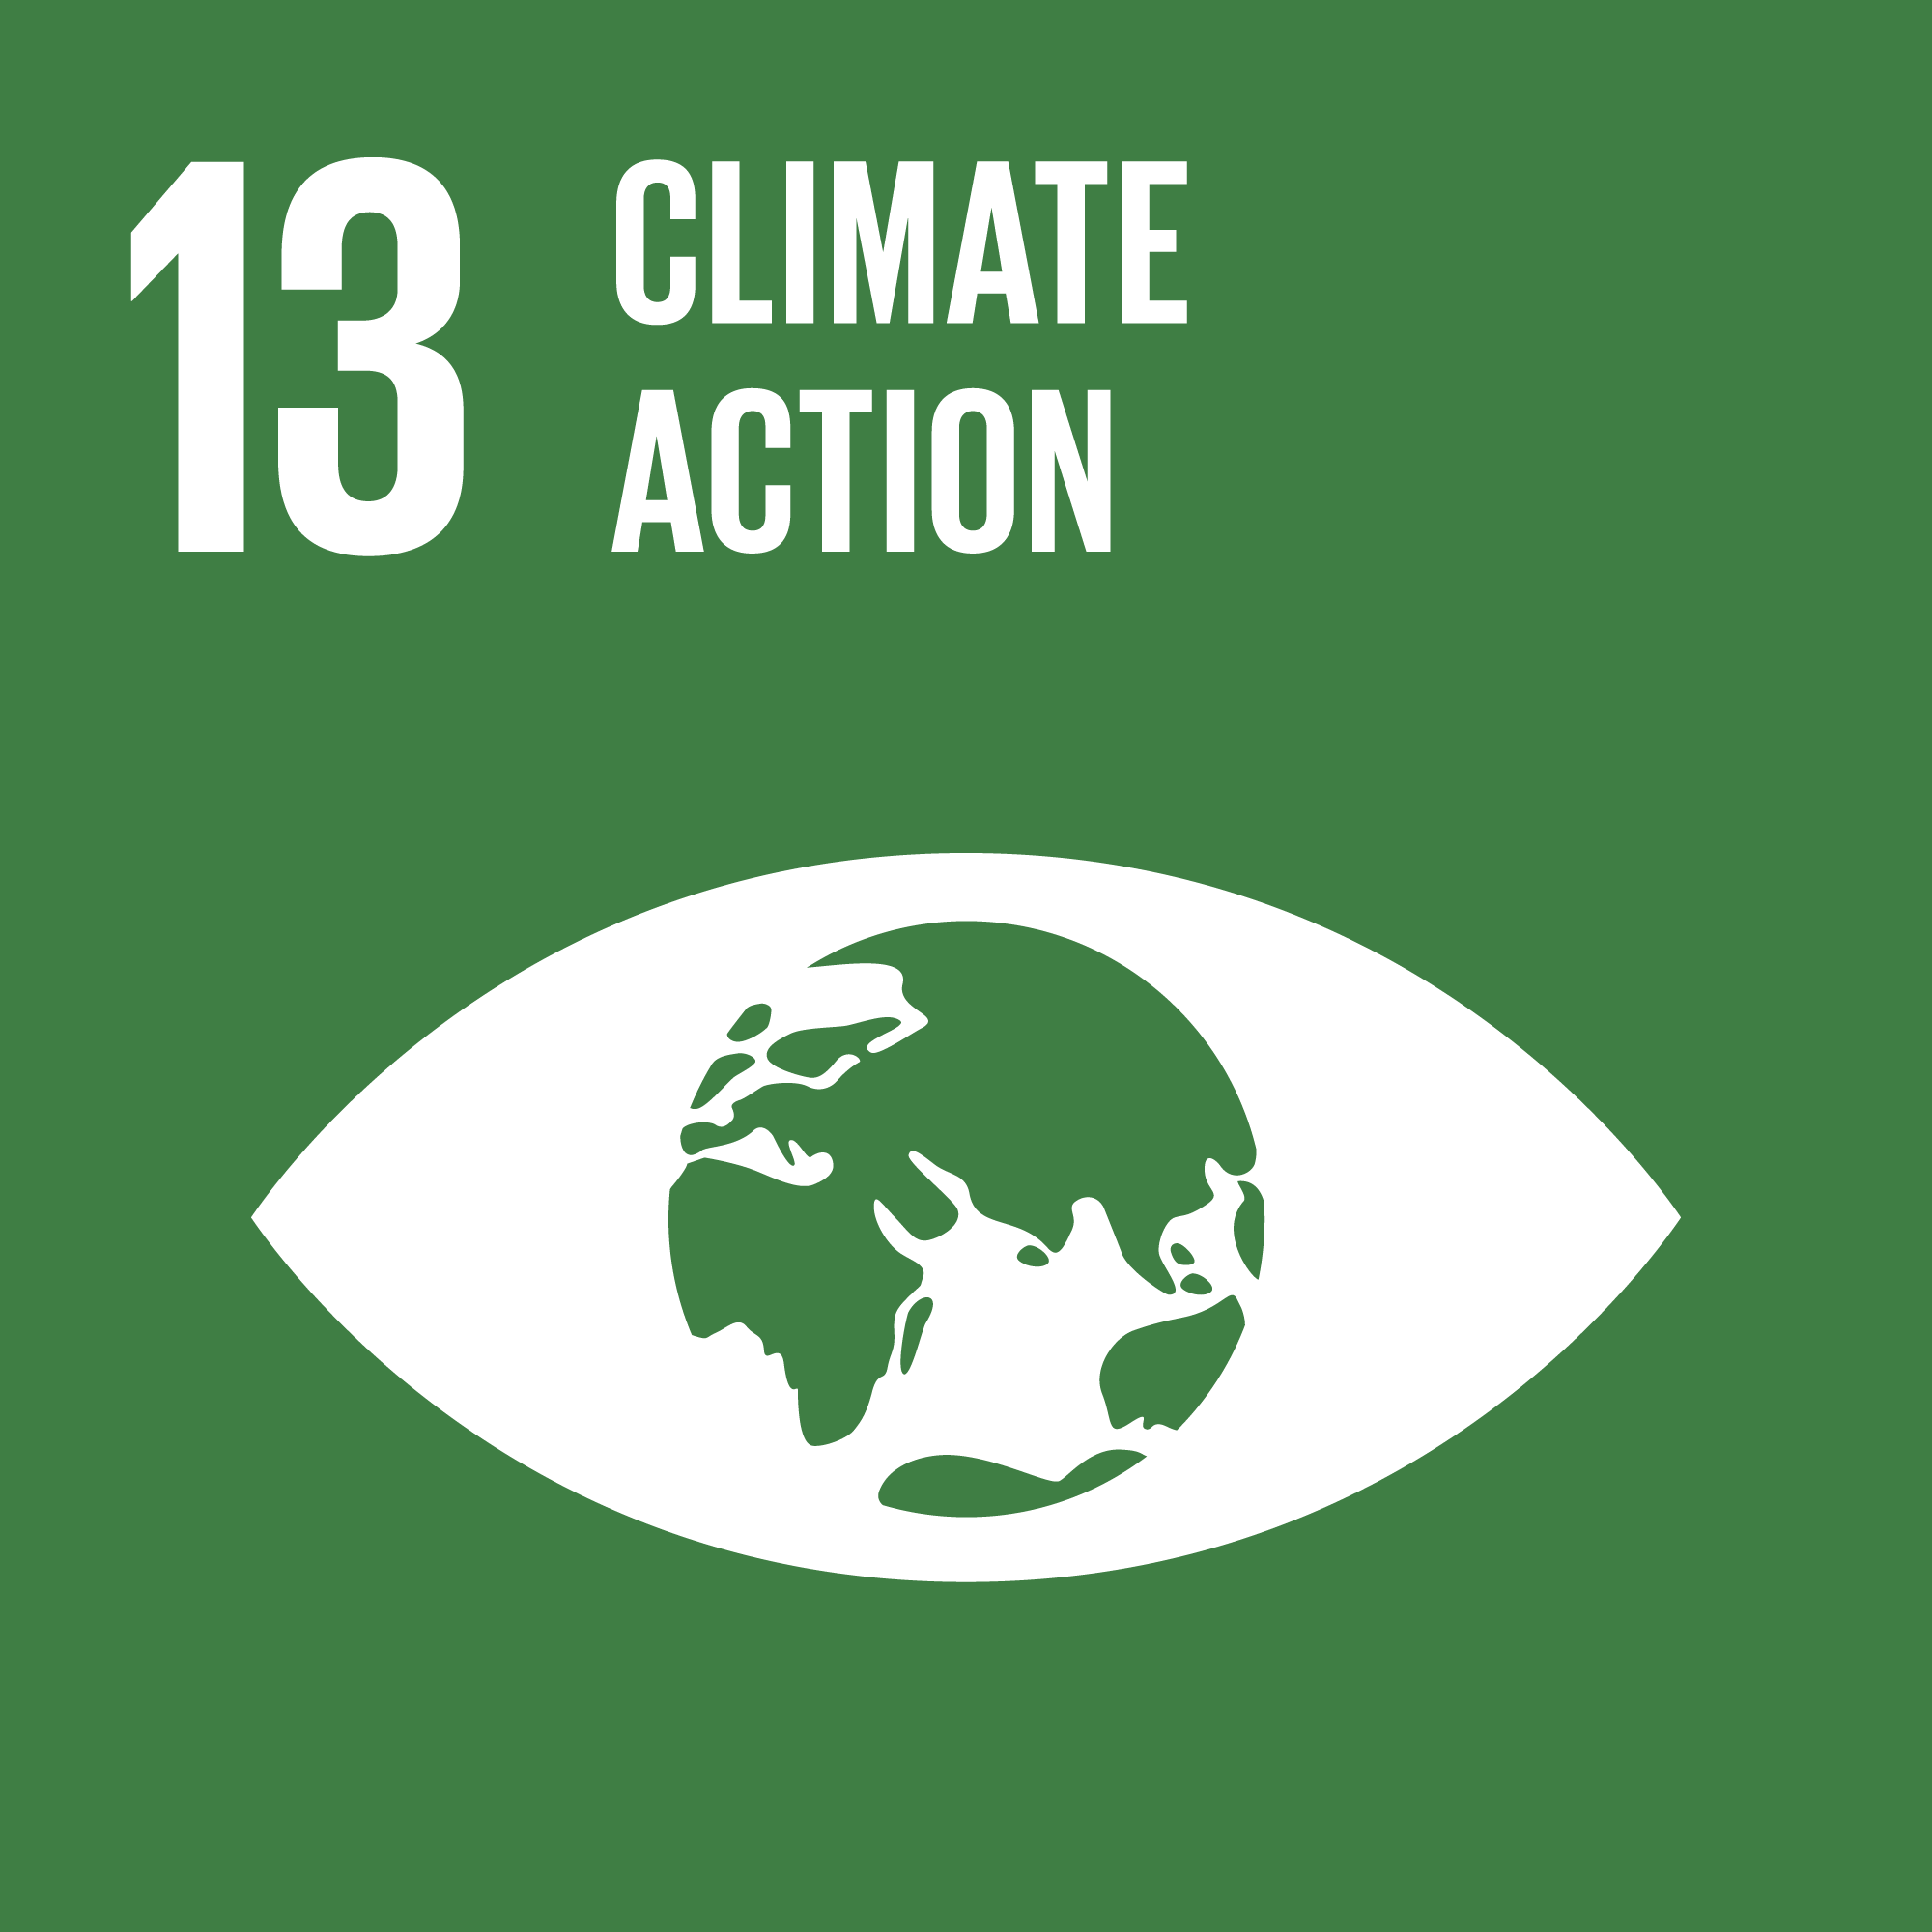 Agenda 2030 goal number 13: climate action